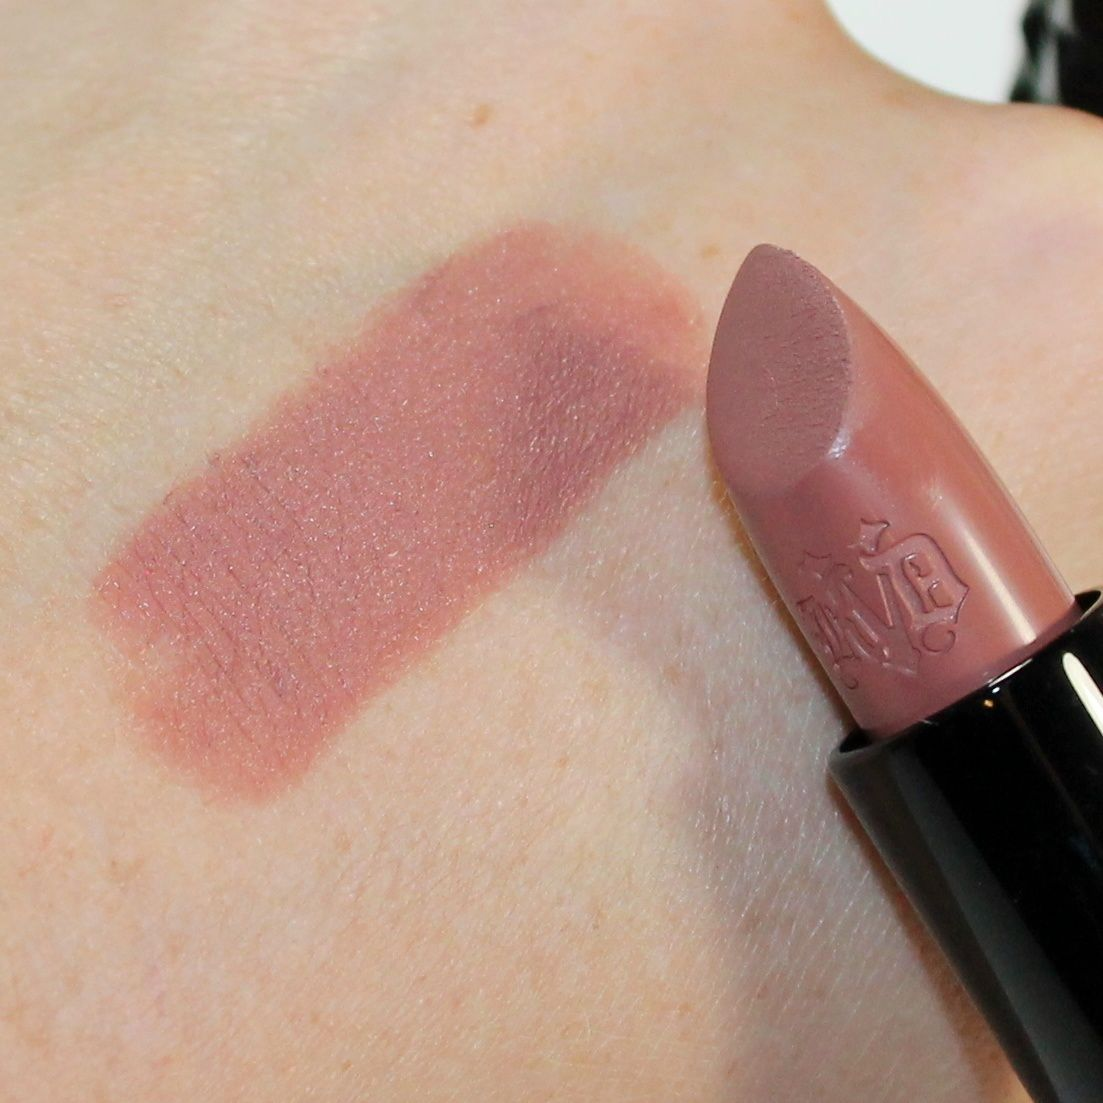 Kat Von D Beauty - Studded Kiss Crème Lipstick in Bow N Arrow